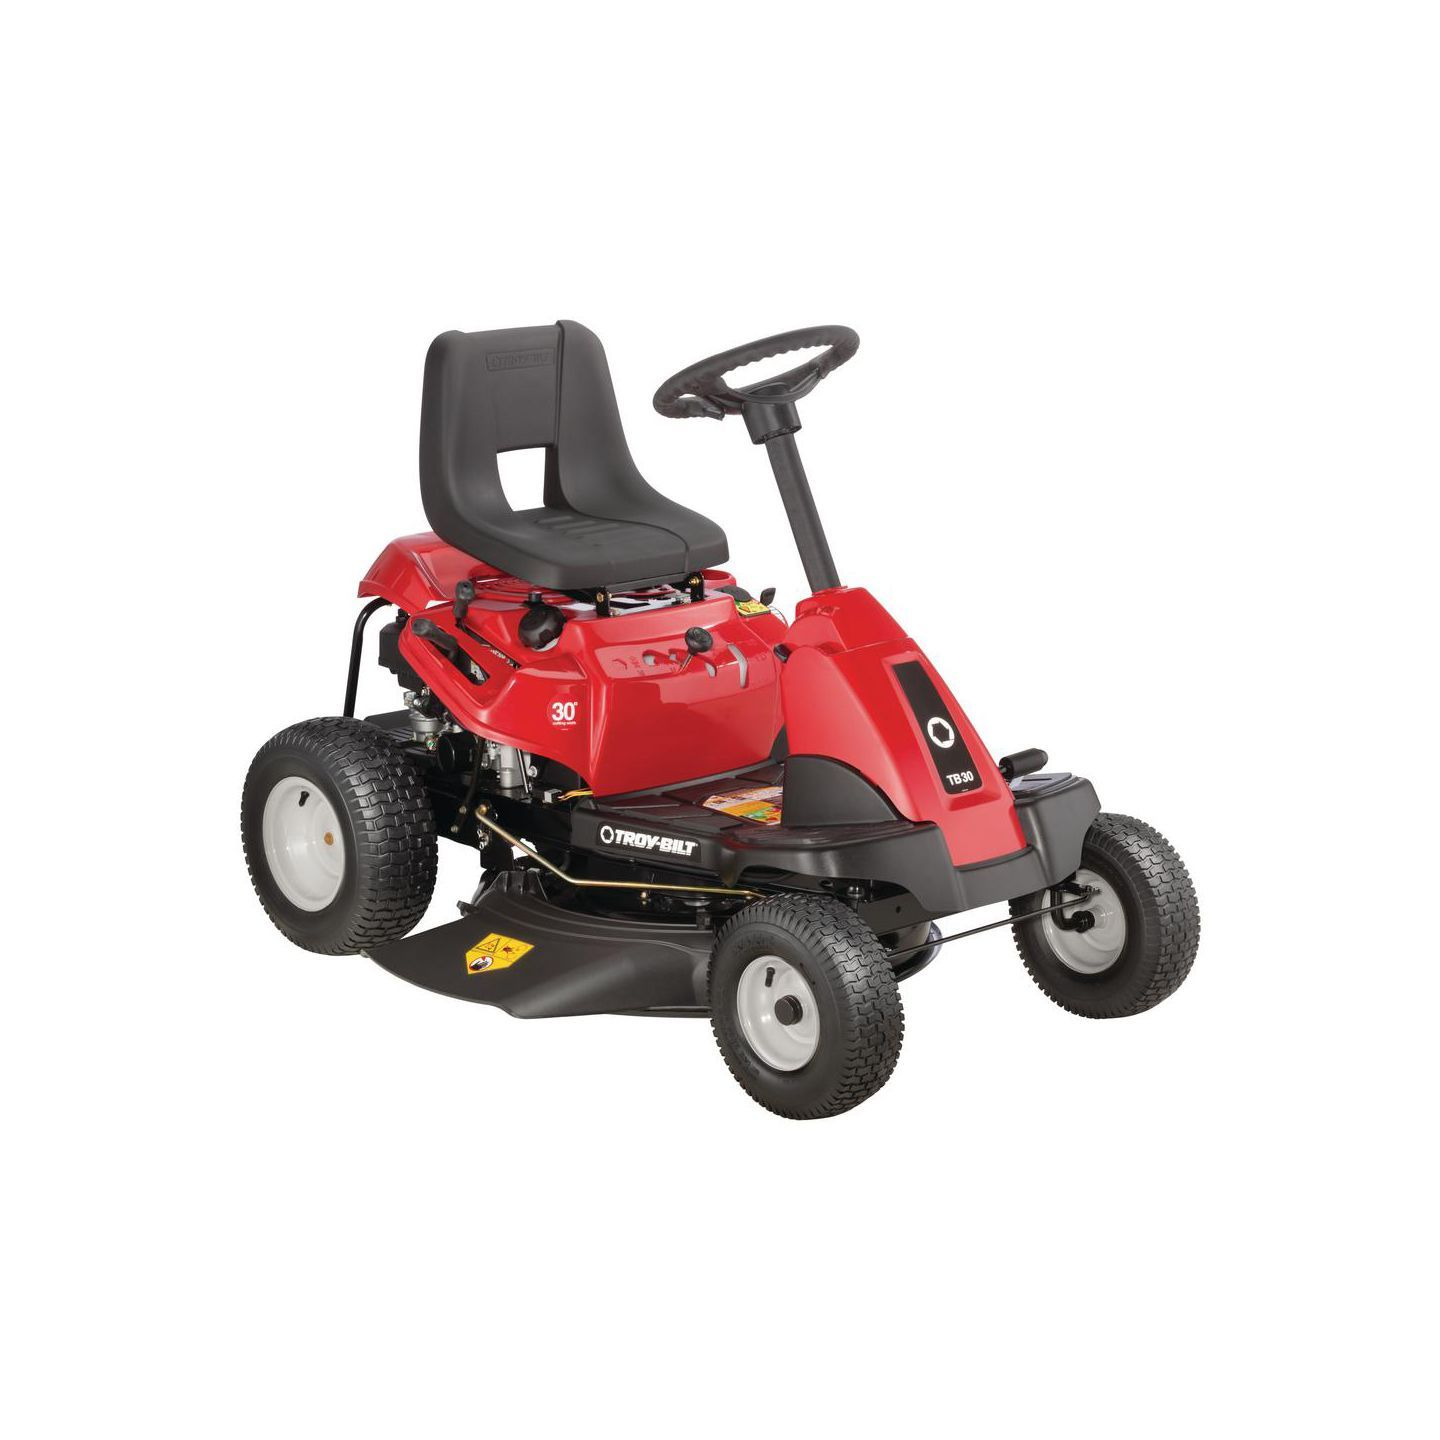 Best Riding Lawn Mowers 2019 - Riding Mower Reviews